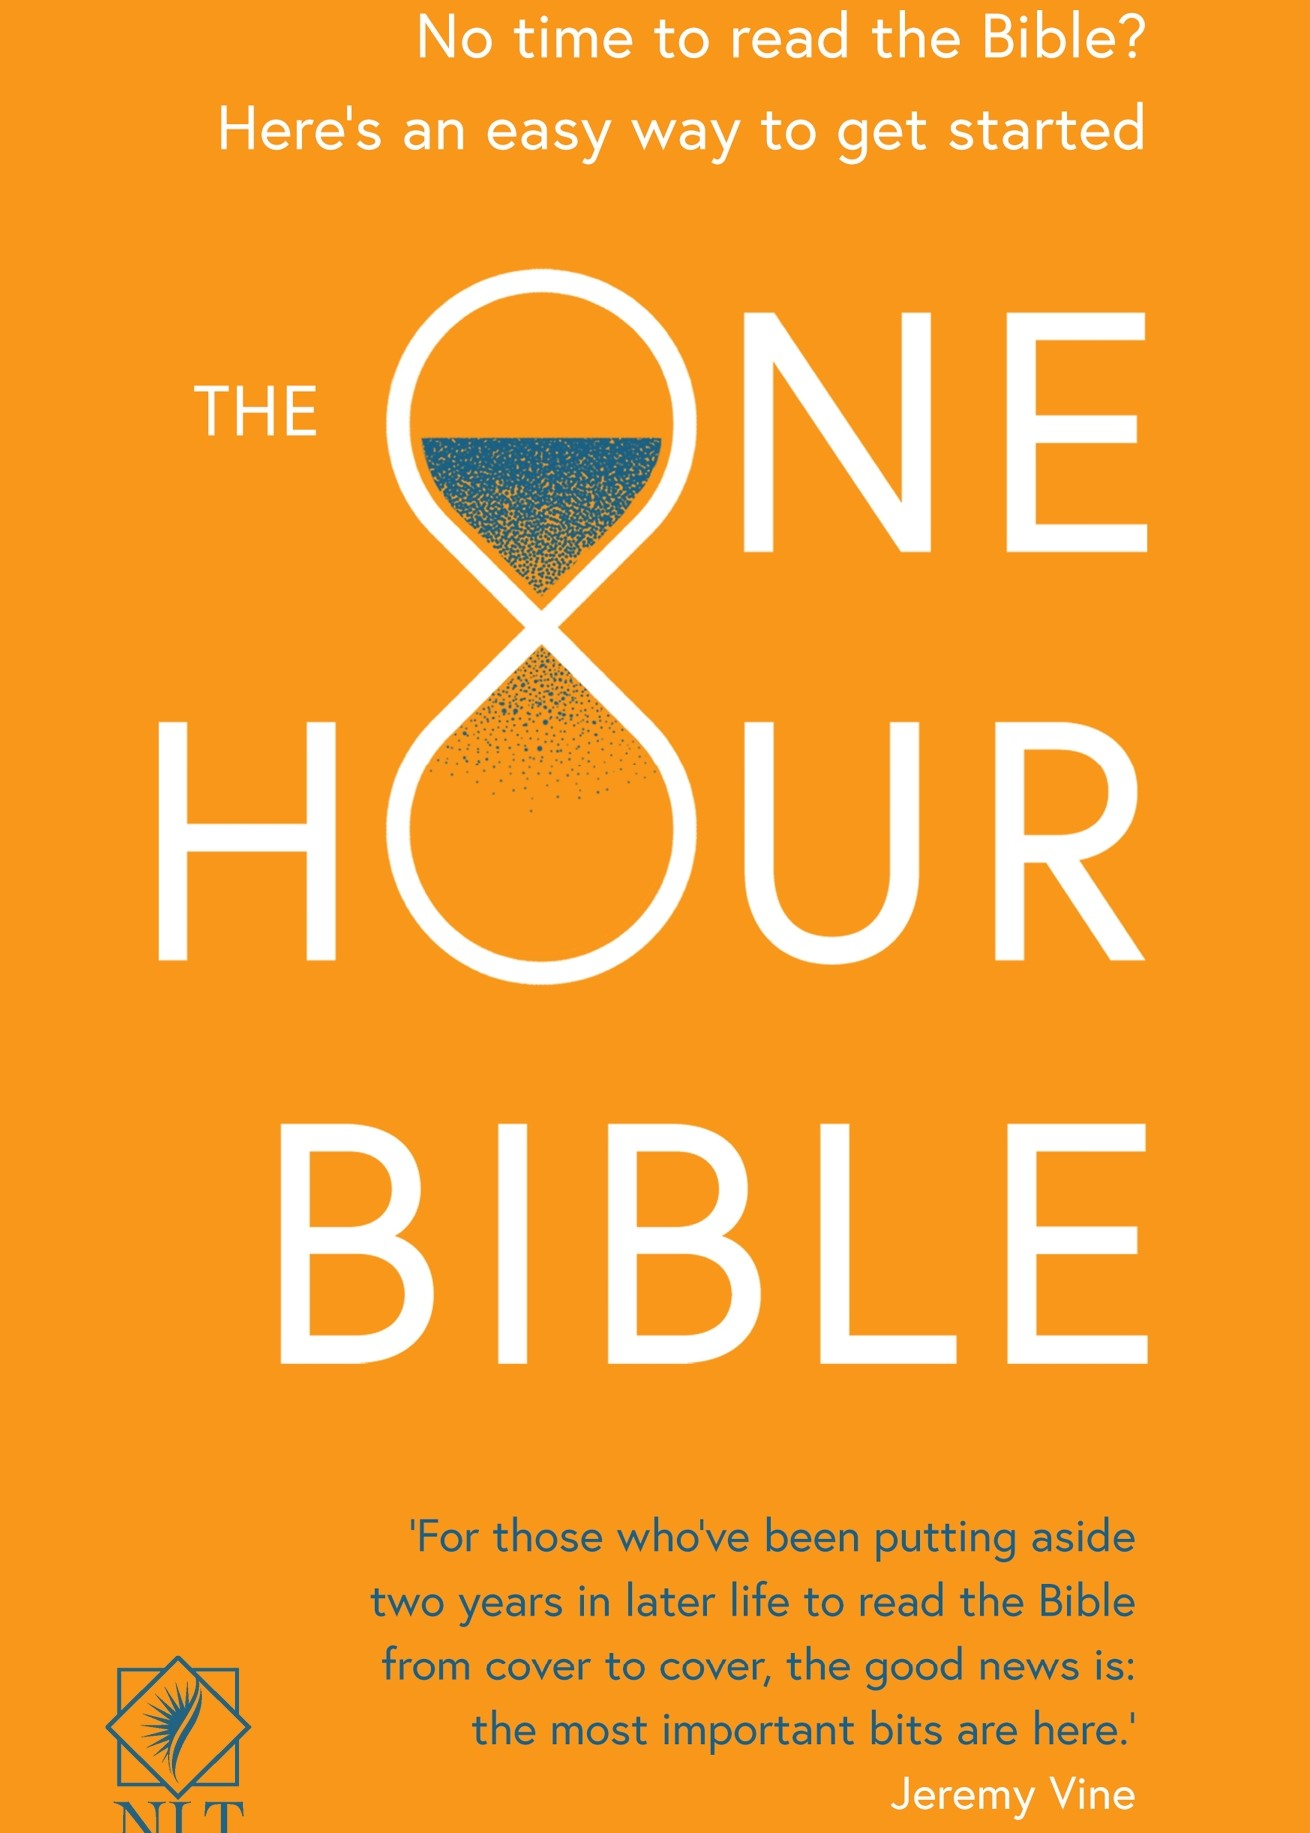 The One Hour Bible - Philip Law - SPCK Publishing